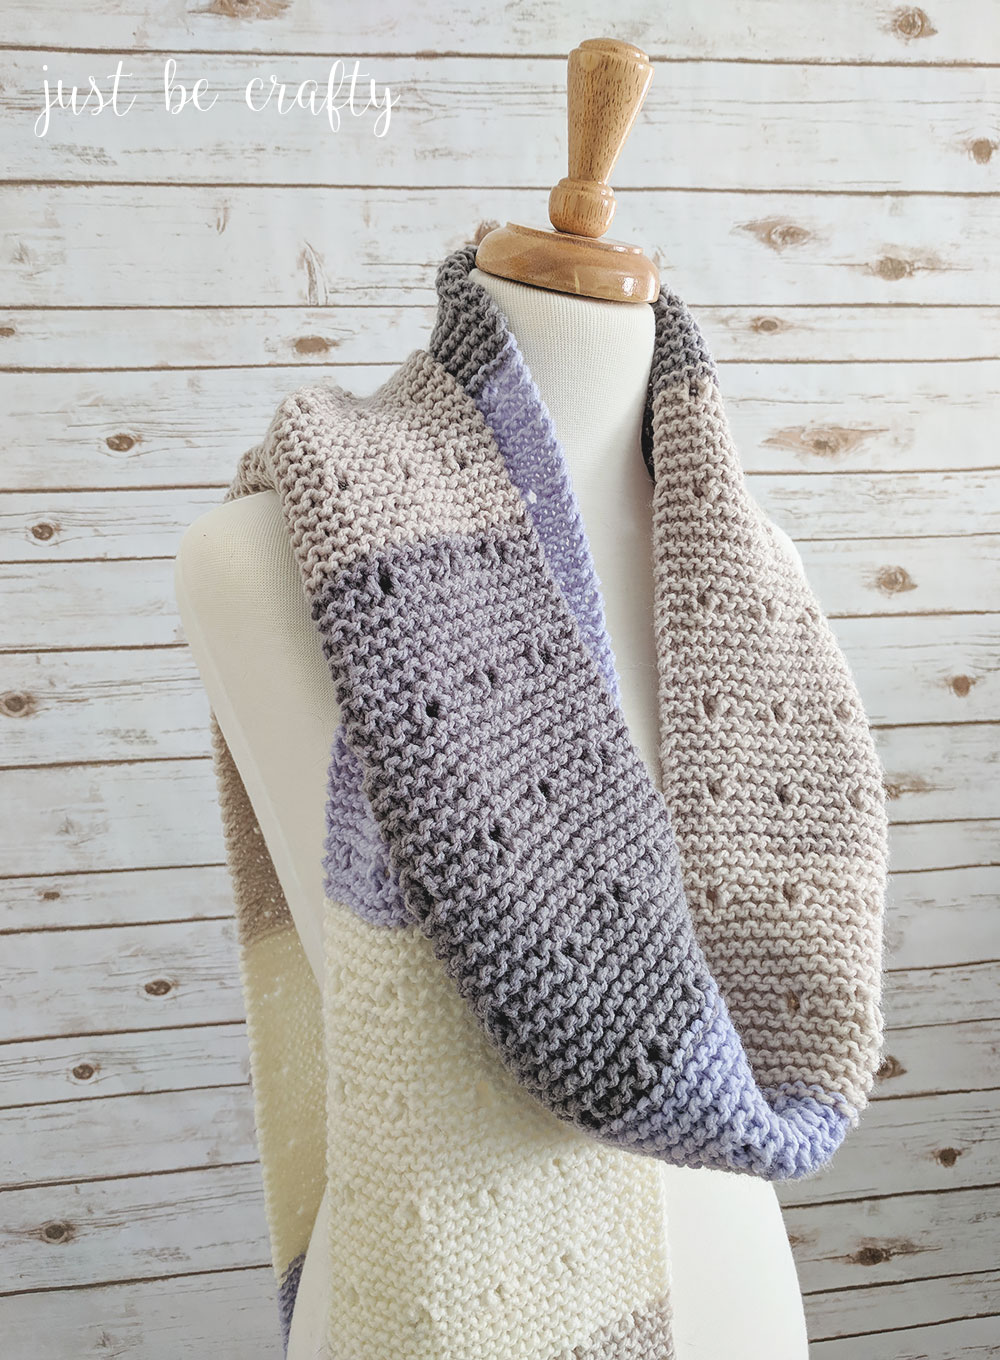 Star-Dust-Garter-Stitch-Scarf-Pattern2